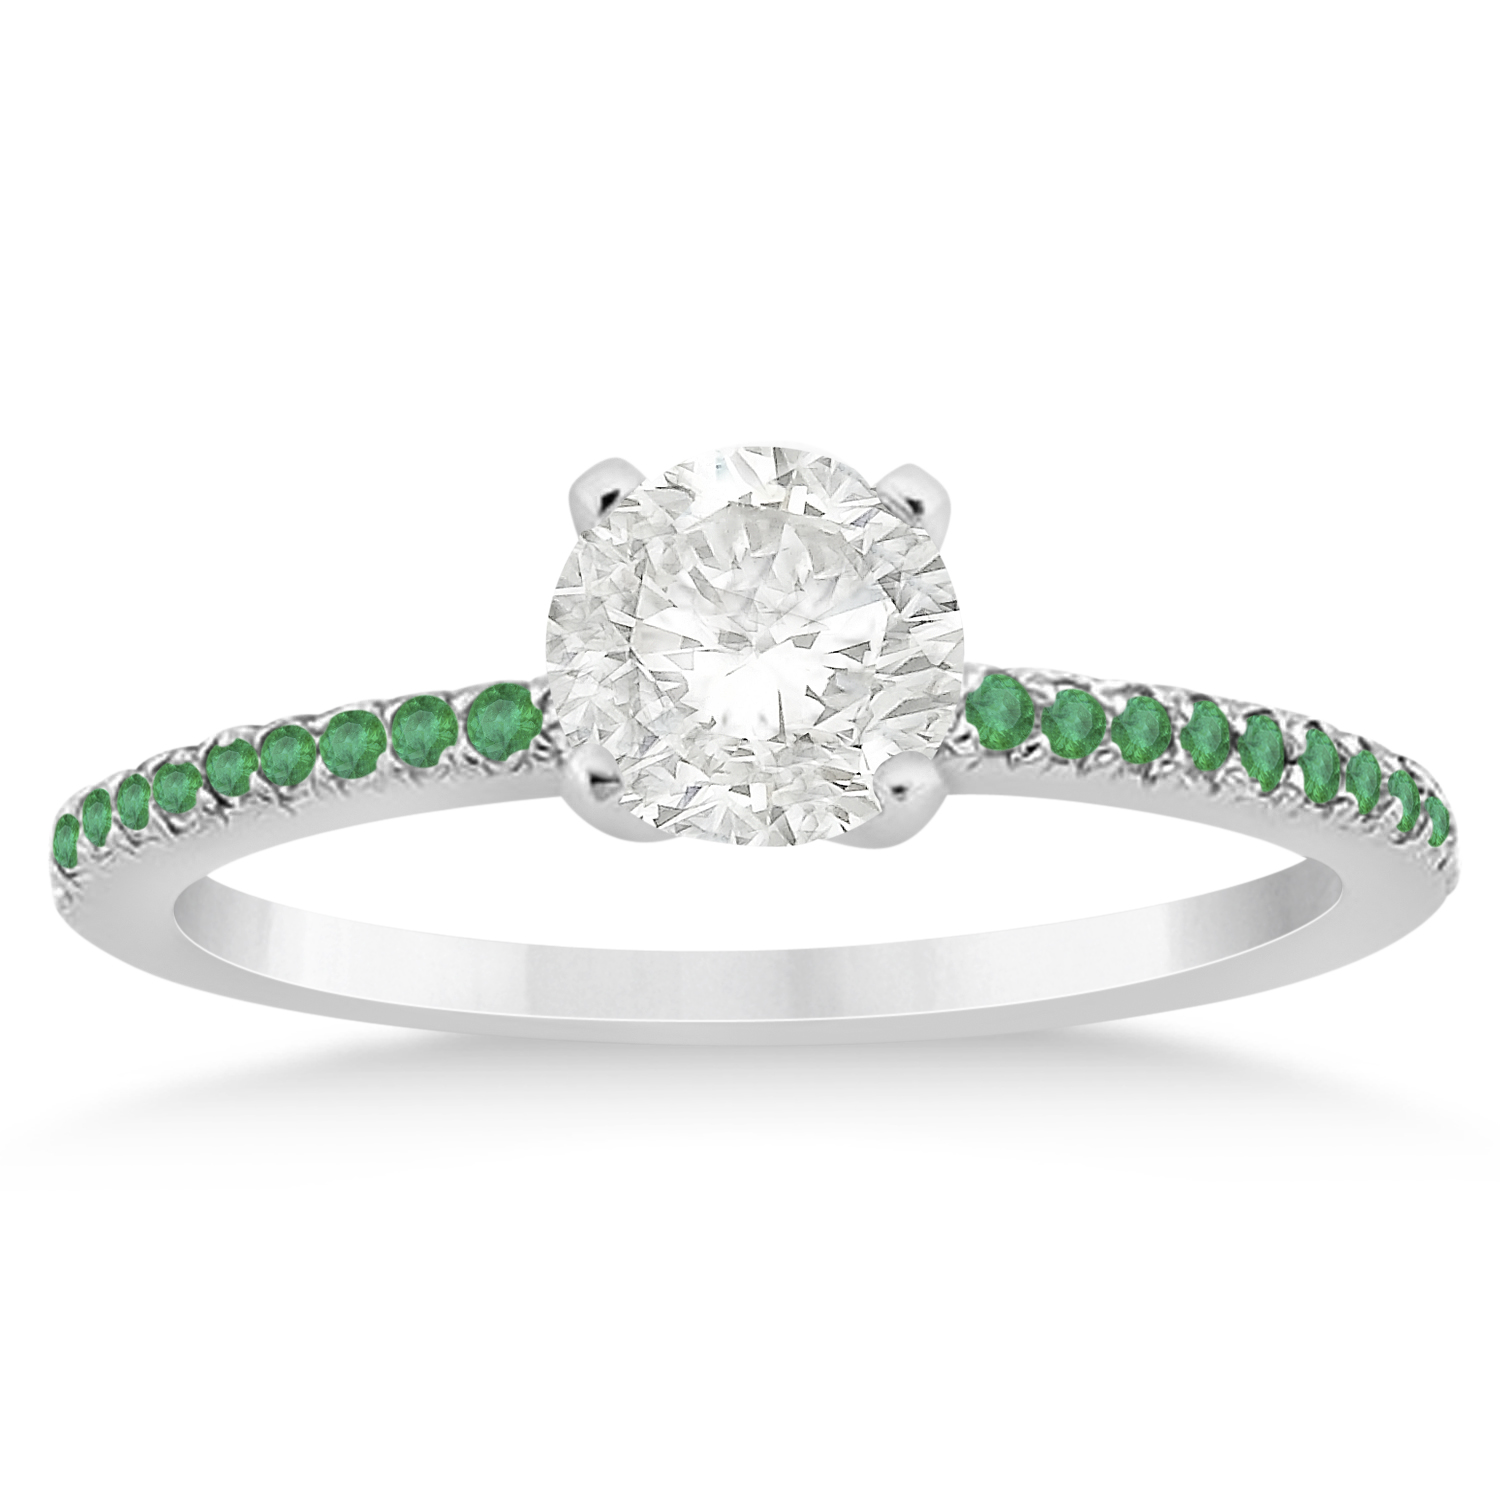 emerald accented engagement ring setting 14k white gold 0 18ct